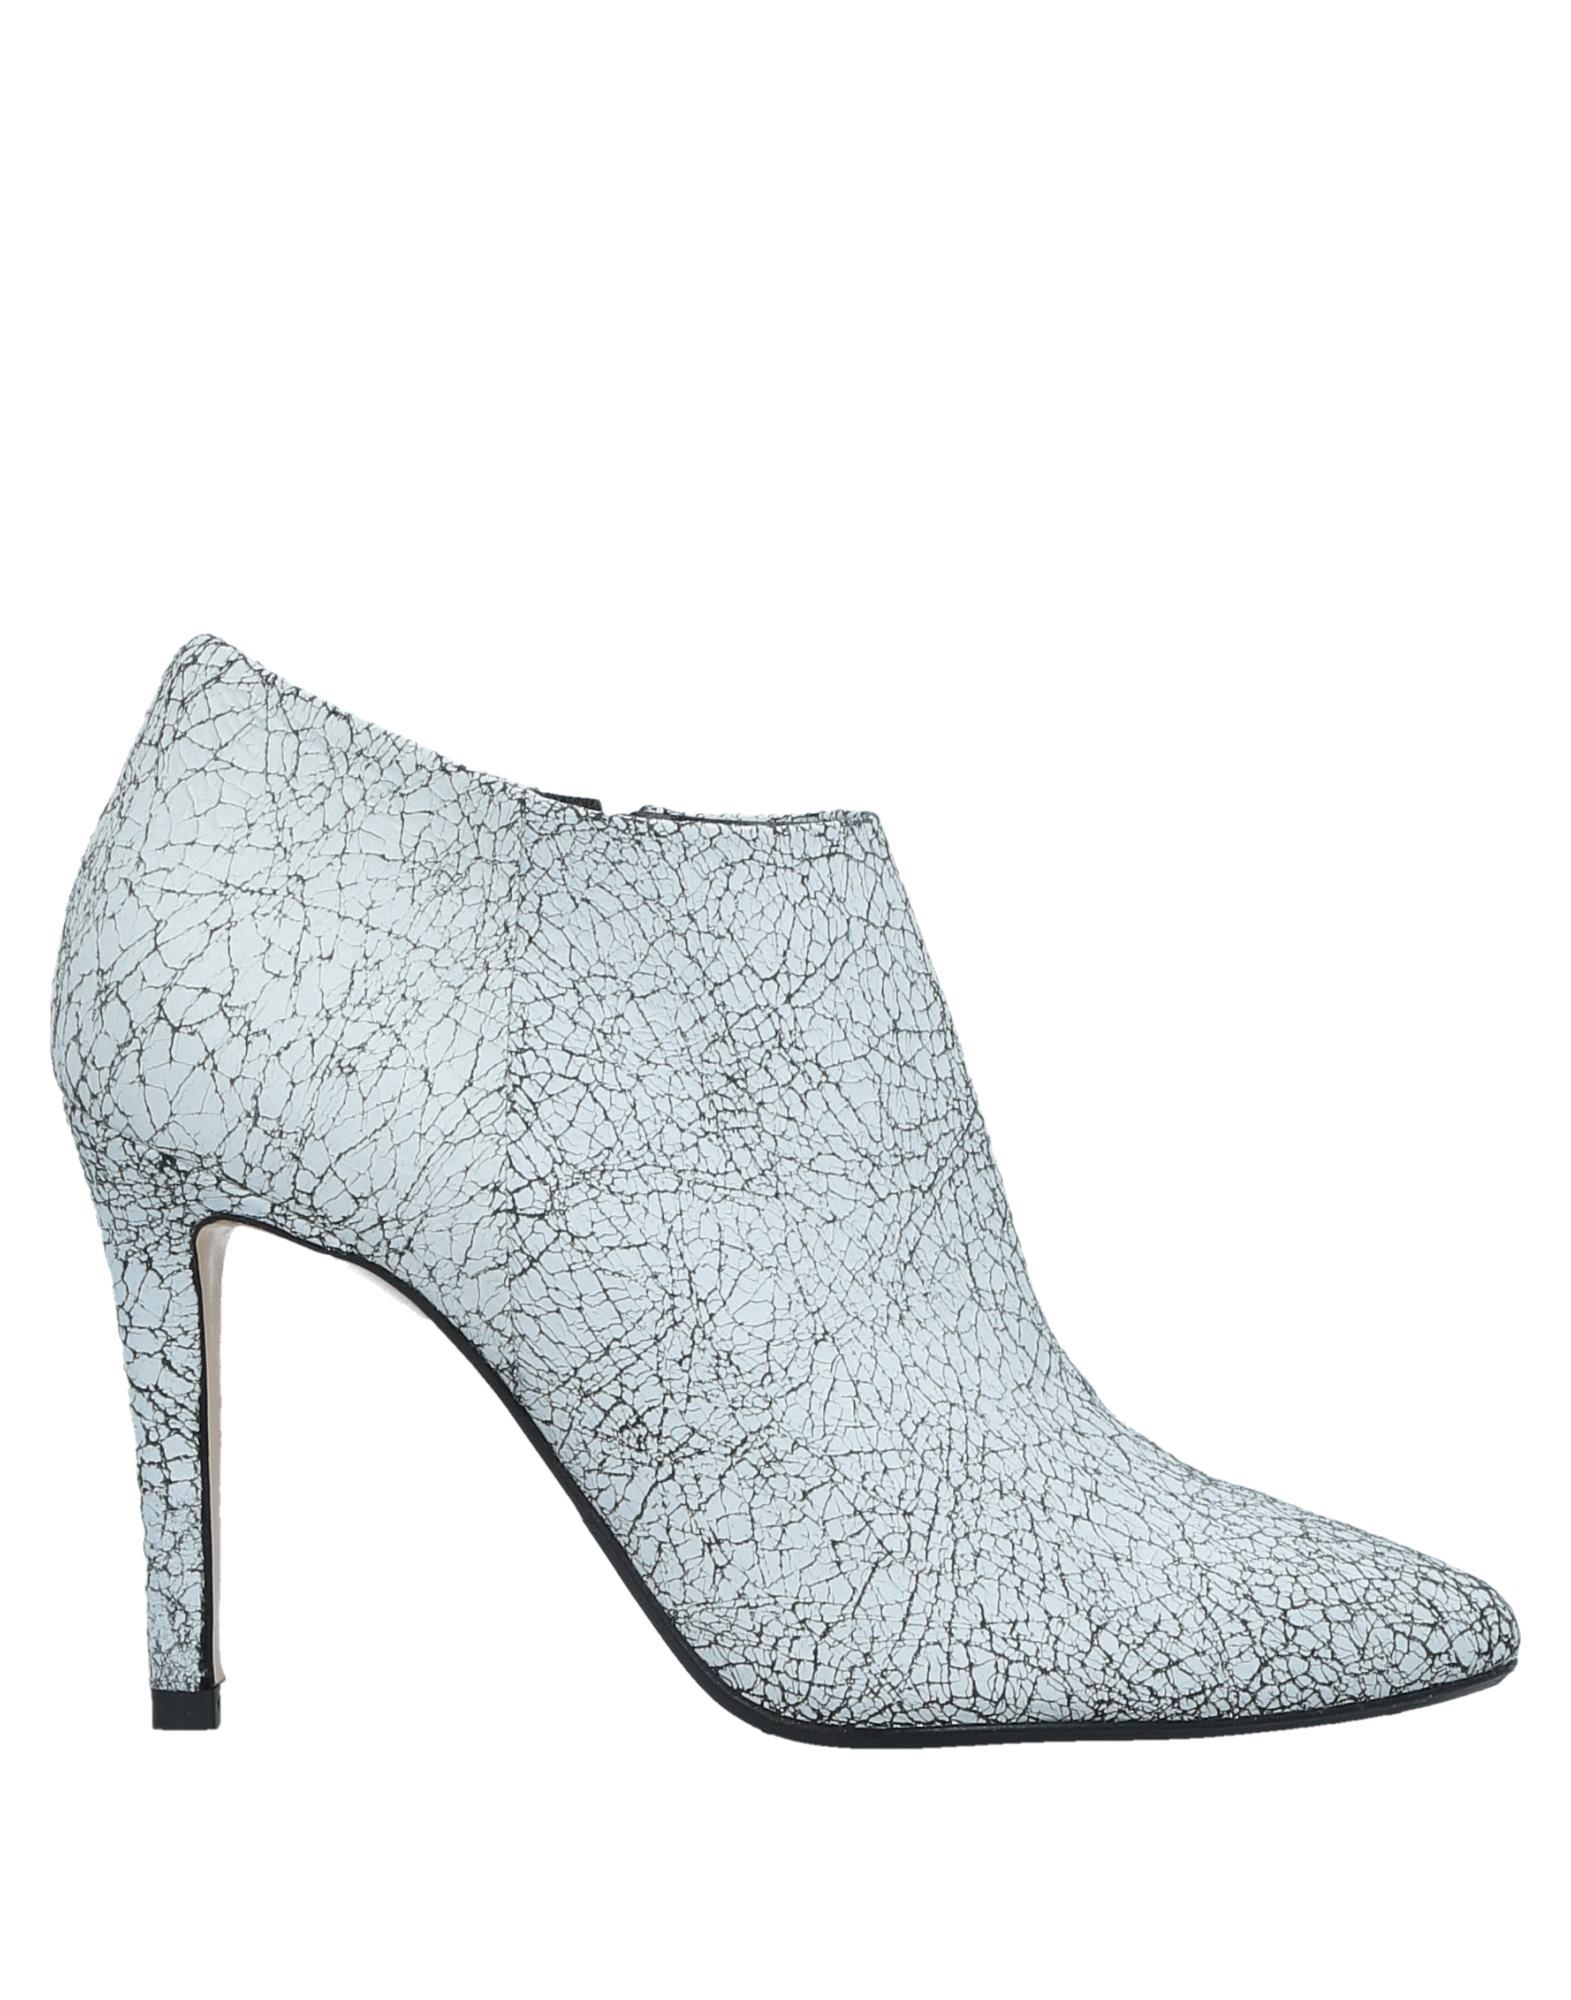 GIAMPAOLO VIOZZI Ankle Boot in White